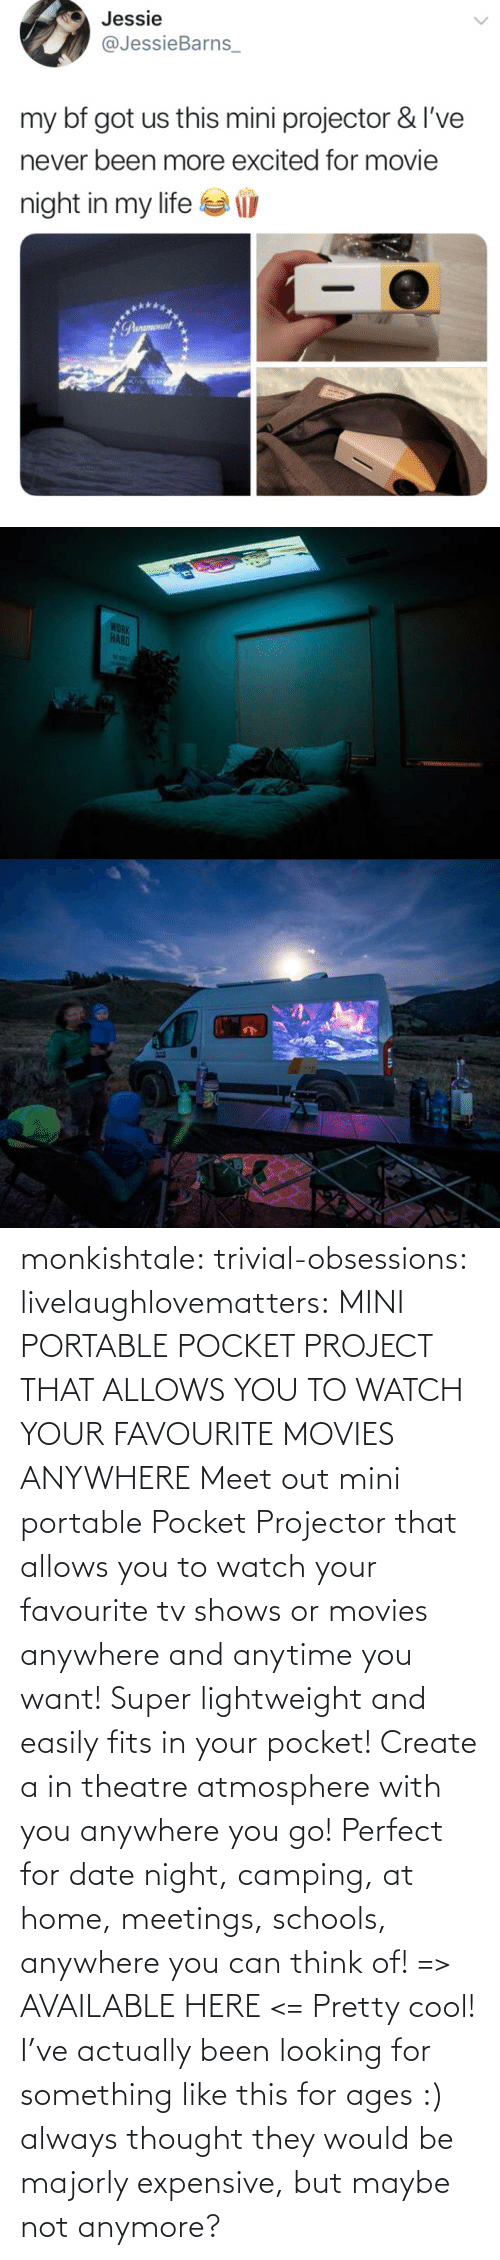 Actually: monkishtale: trivial-obsessions:   livelaughlovematters:   MINI PORTABLE POCKET PROJECT THAT ALLOWS YOU TO WATCH YOUR FAVOURITE MOVIES ANYWHERE Meet out mini portable Pocket Projector that allows you to watch your favourite tv shows or movies anywhere and anytime you want! Super lightweight and easily fits in your pocket! Create a in theatre atmosphere with you anywhere you go! Perfect for date night, camping, at home, meetings, schools, anywhere you can think of! => AVAILABLE HERE <=    Pretty cool!    I've actually been looking for something like this for ages :) always thought they would be majorly expensive, but maybe not anymore?